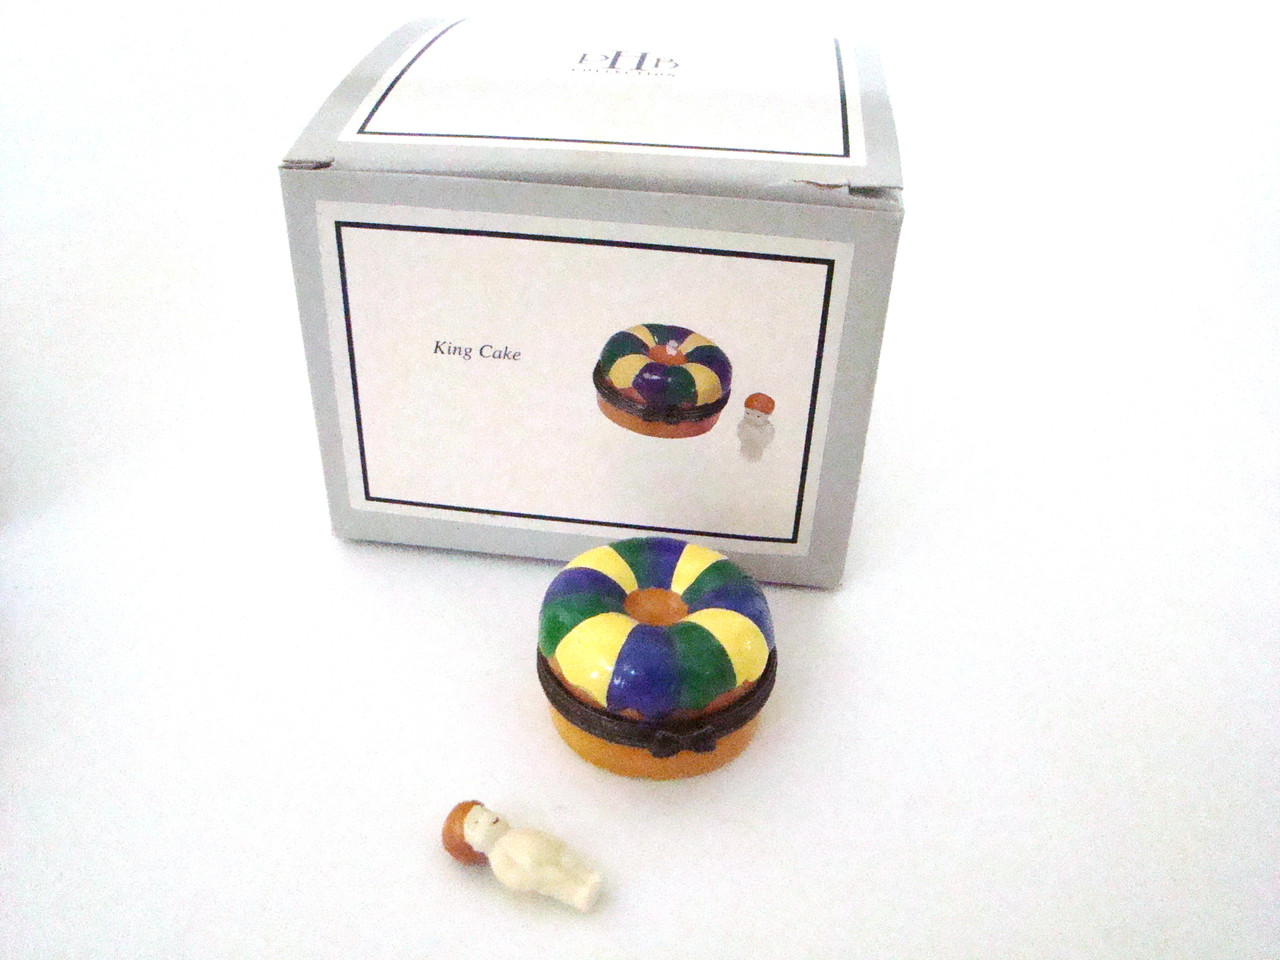 King Cake with Baby Porcelain Hinged Box PHB (21098-7)